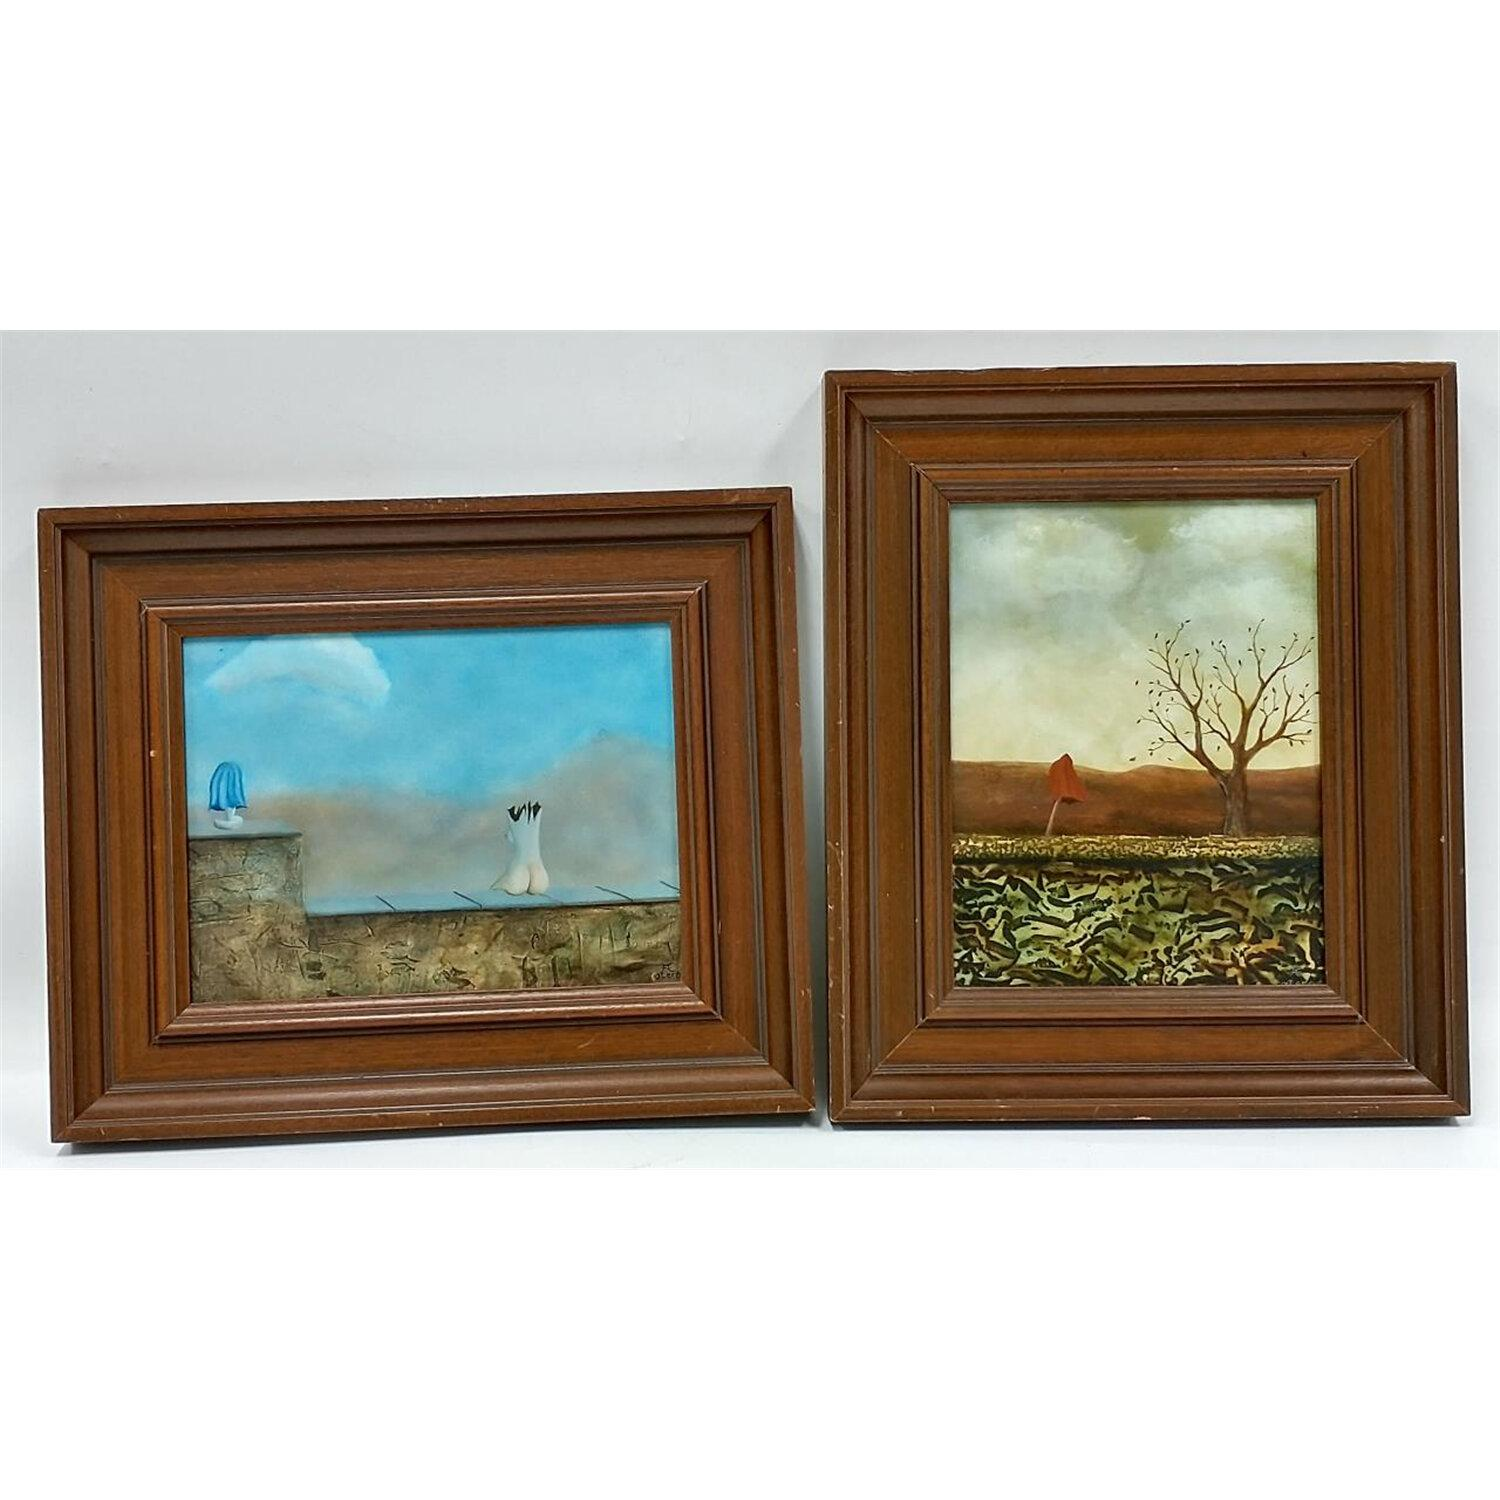 2 Paintings Oil on Board, Signed Otero.